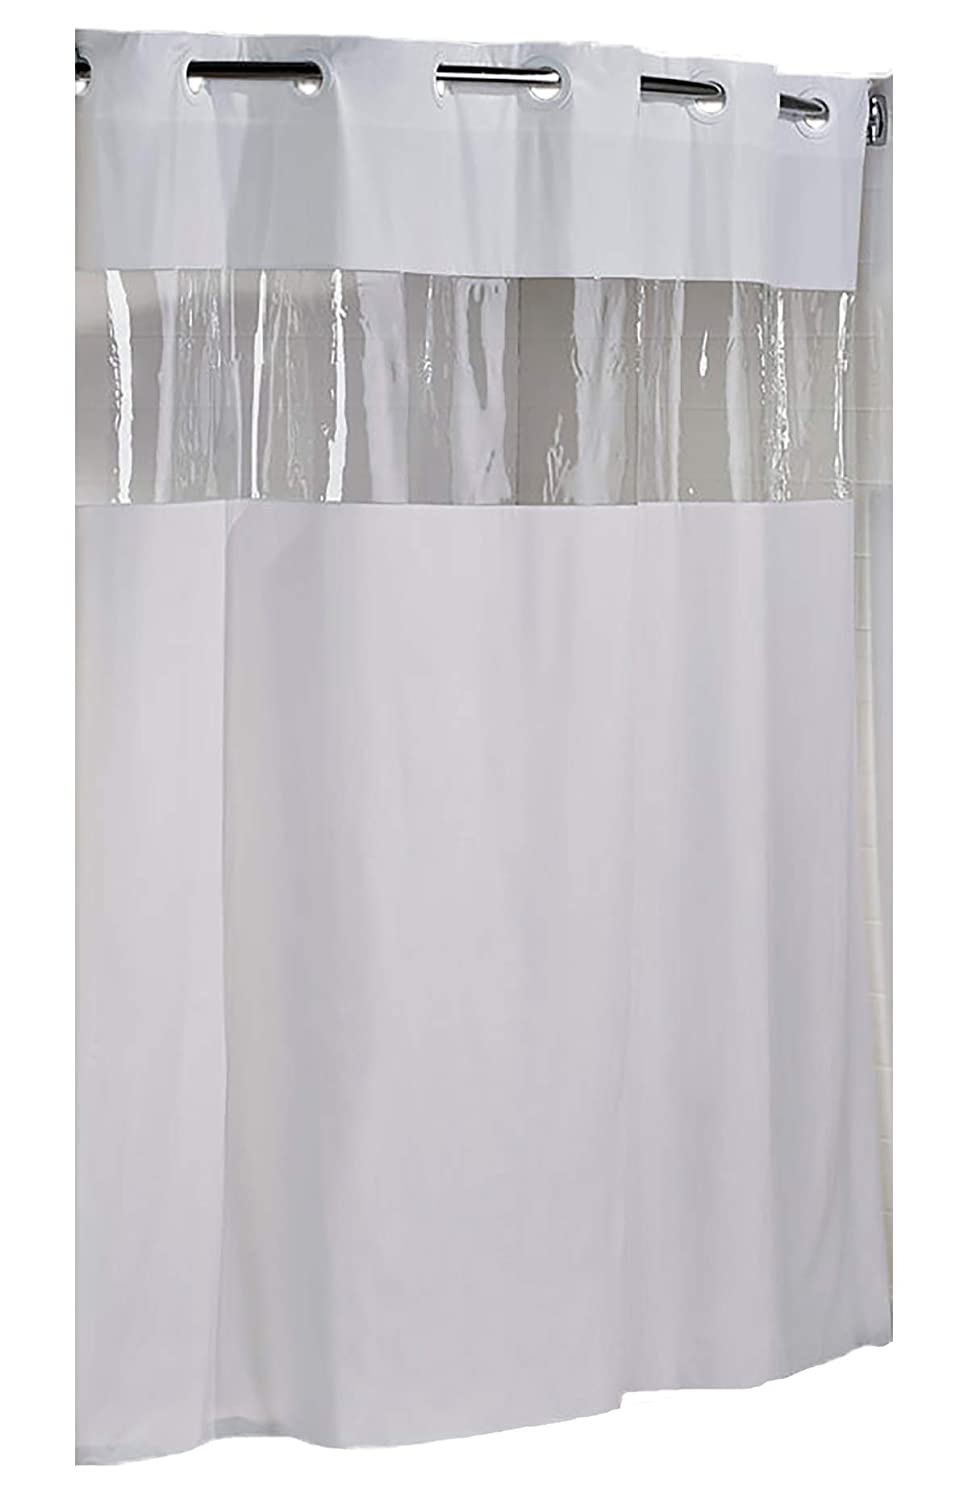 Amazon Hookless HBH08VIS01 Vision Shower Curtain White With Clear Top 71 X 74 Home Kitchen